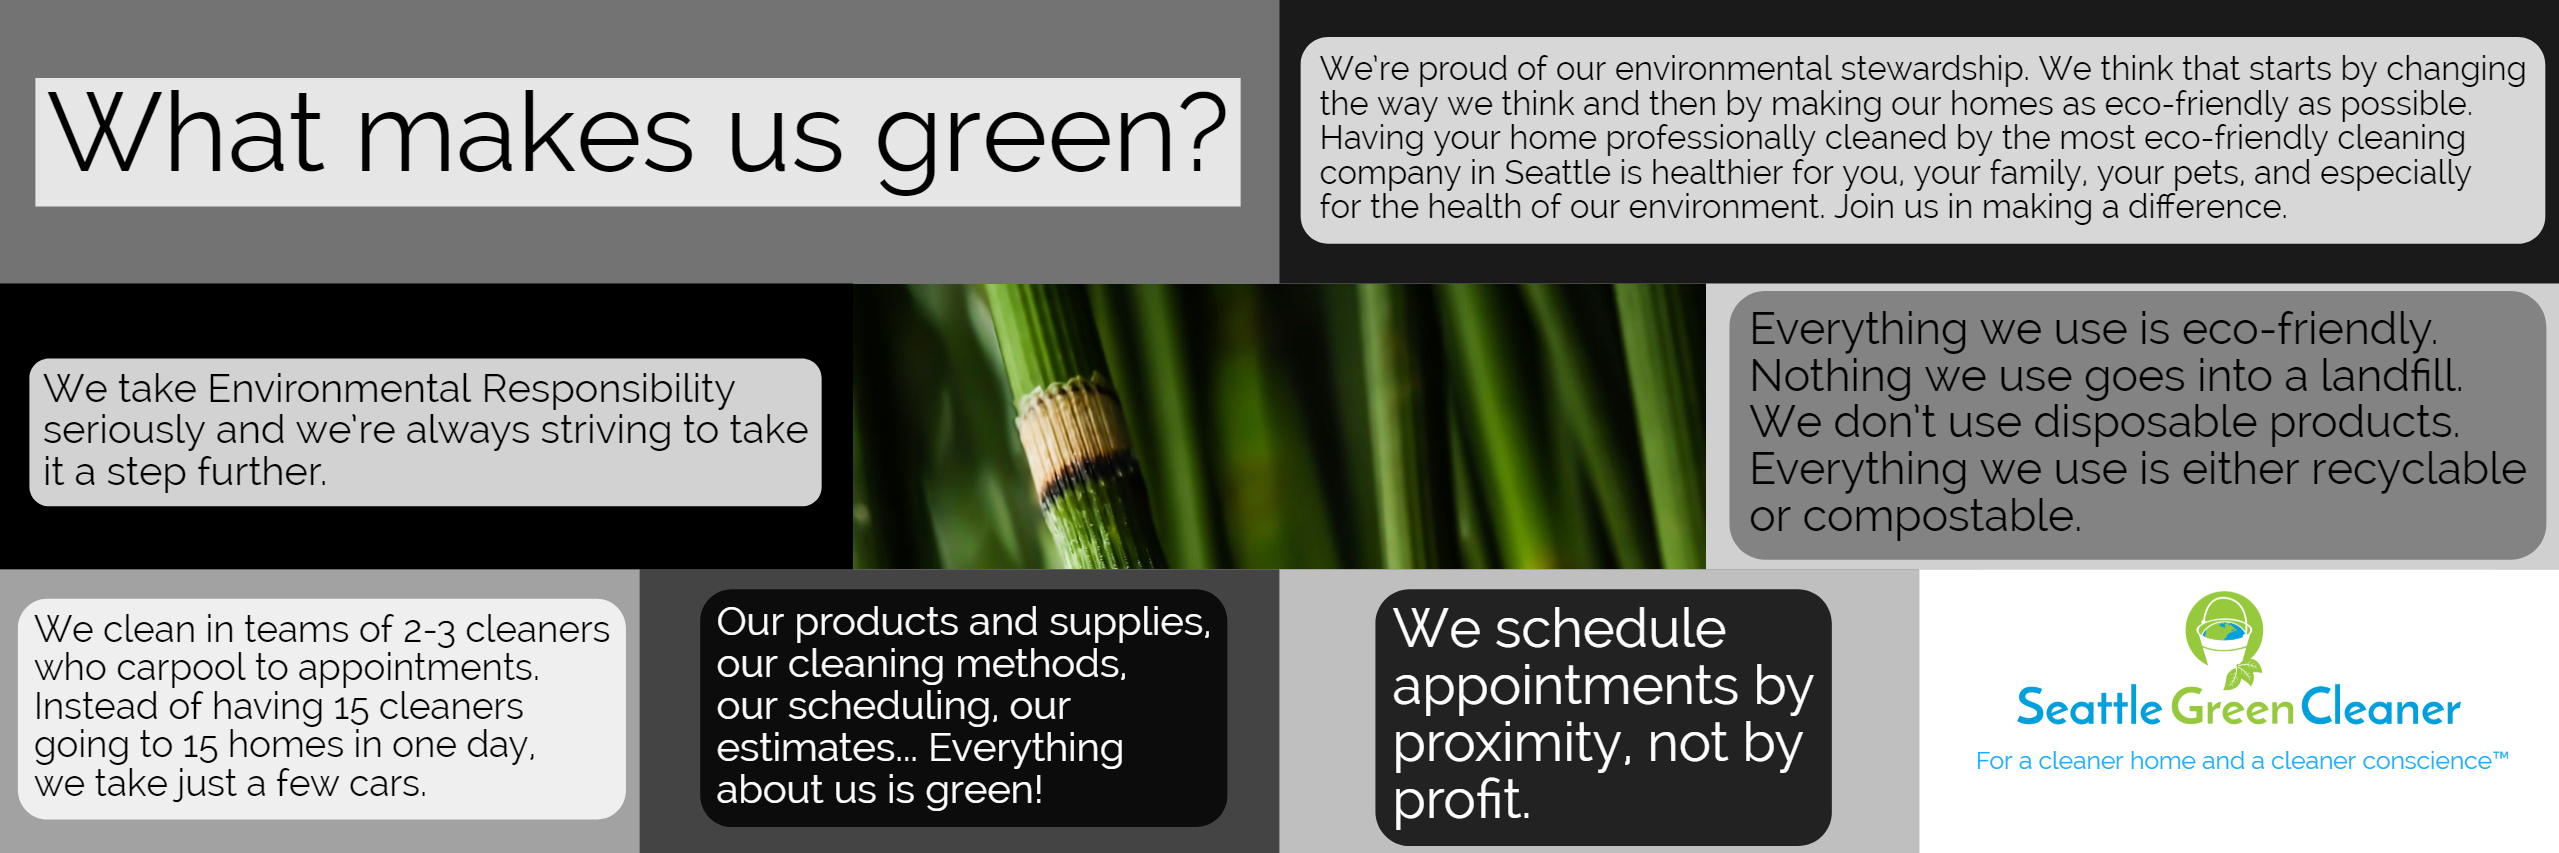 What makes us green